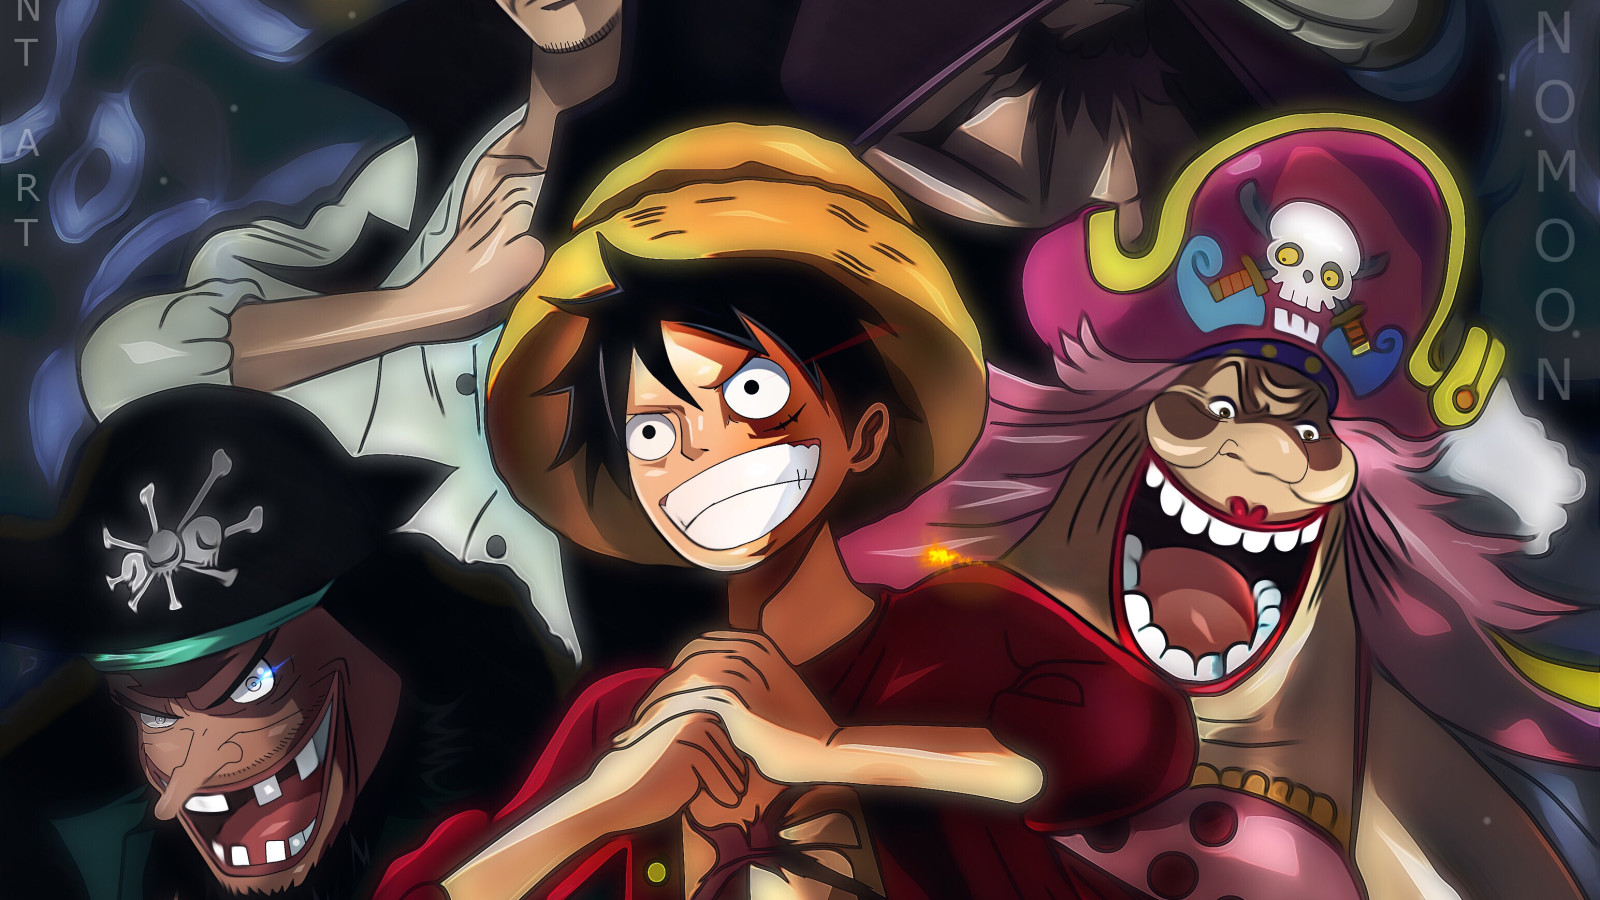 A still from One Piece